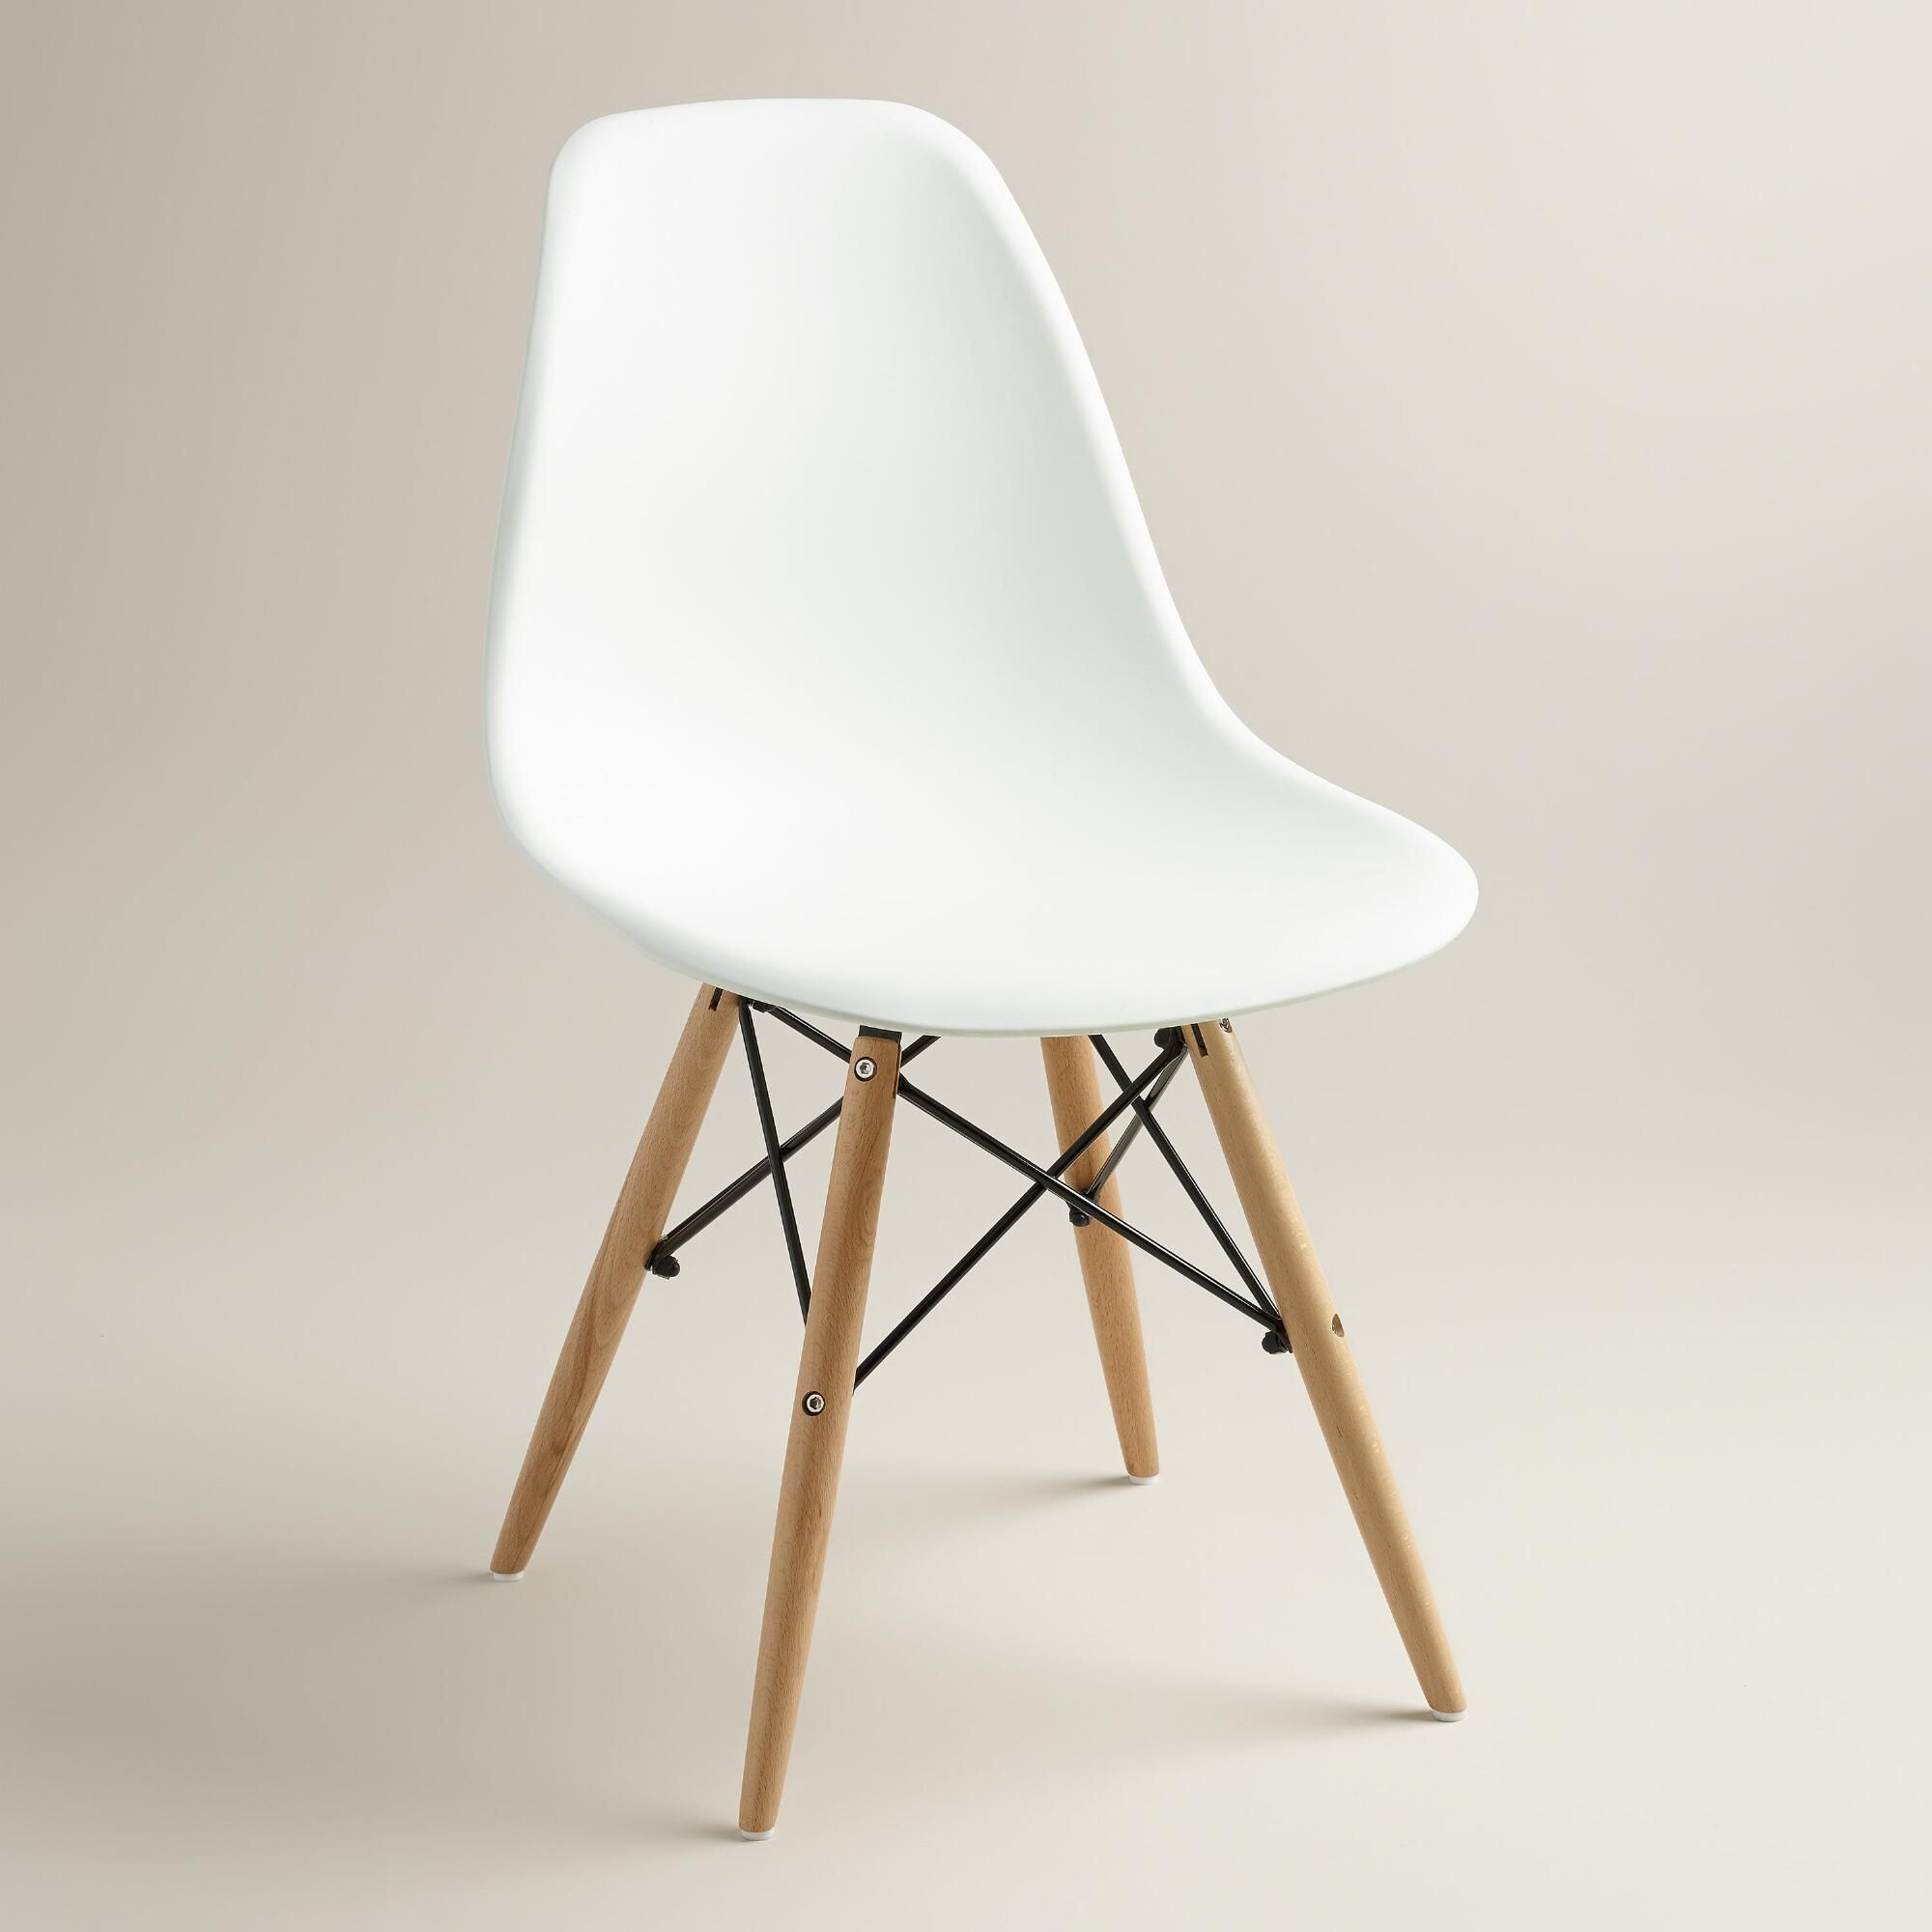 Furniture Eames Side Chair with Wooden Dowel Legs Remodelista Casa Chanco Pinterest